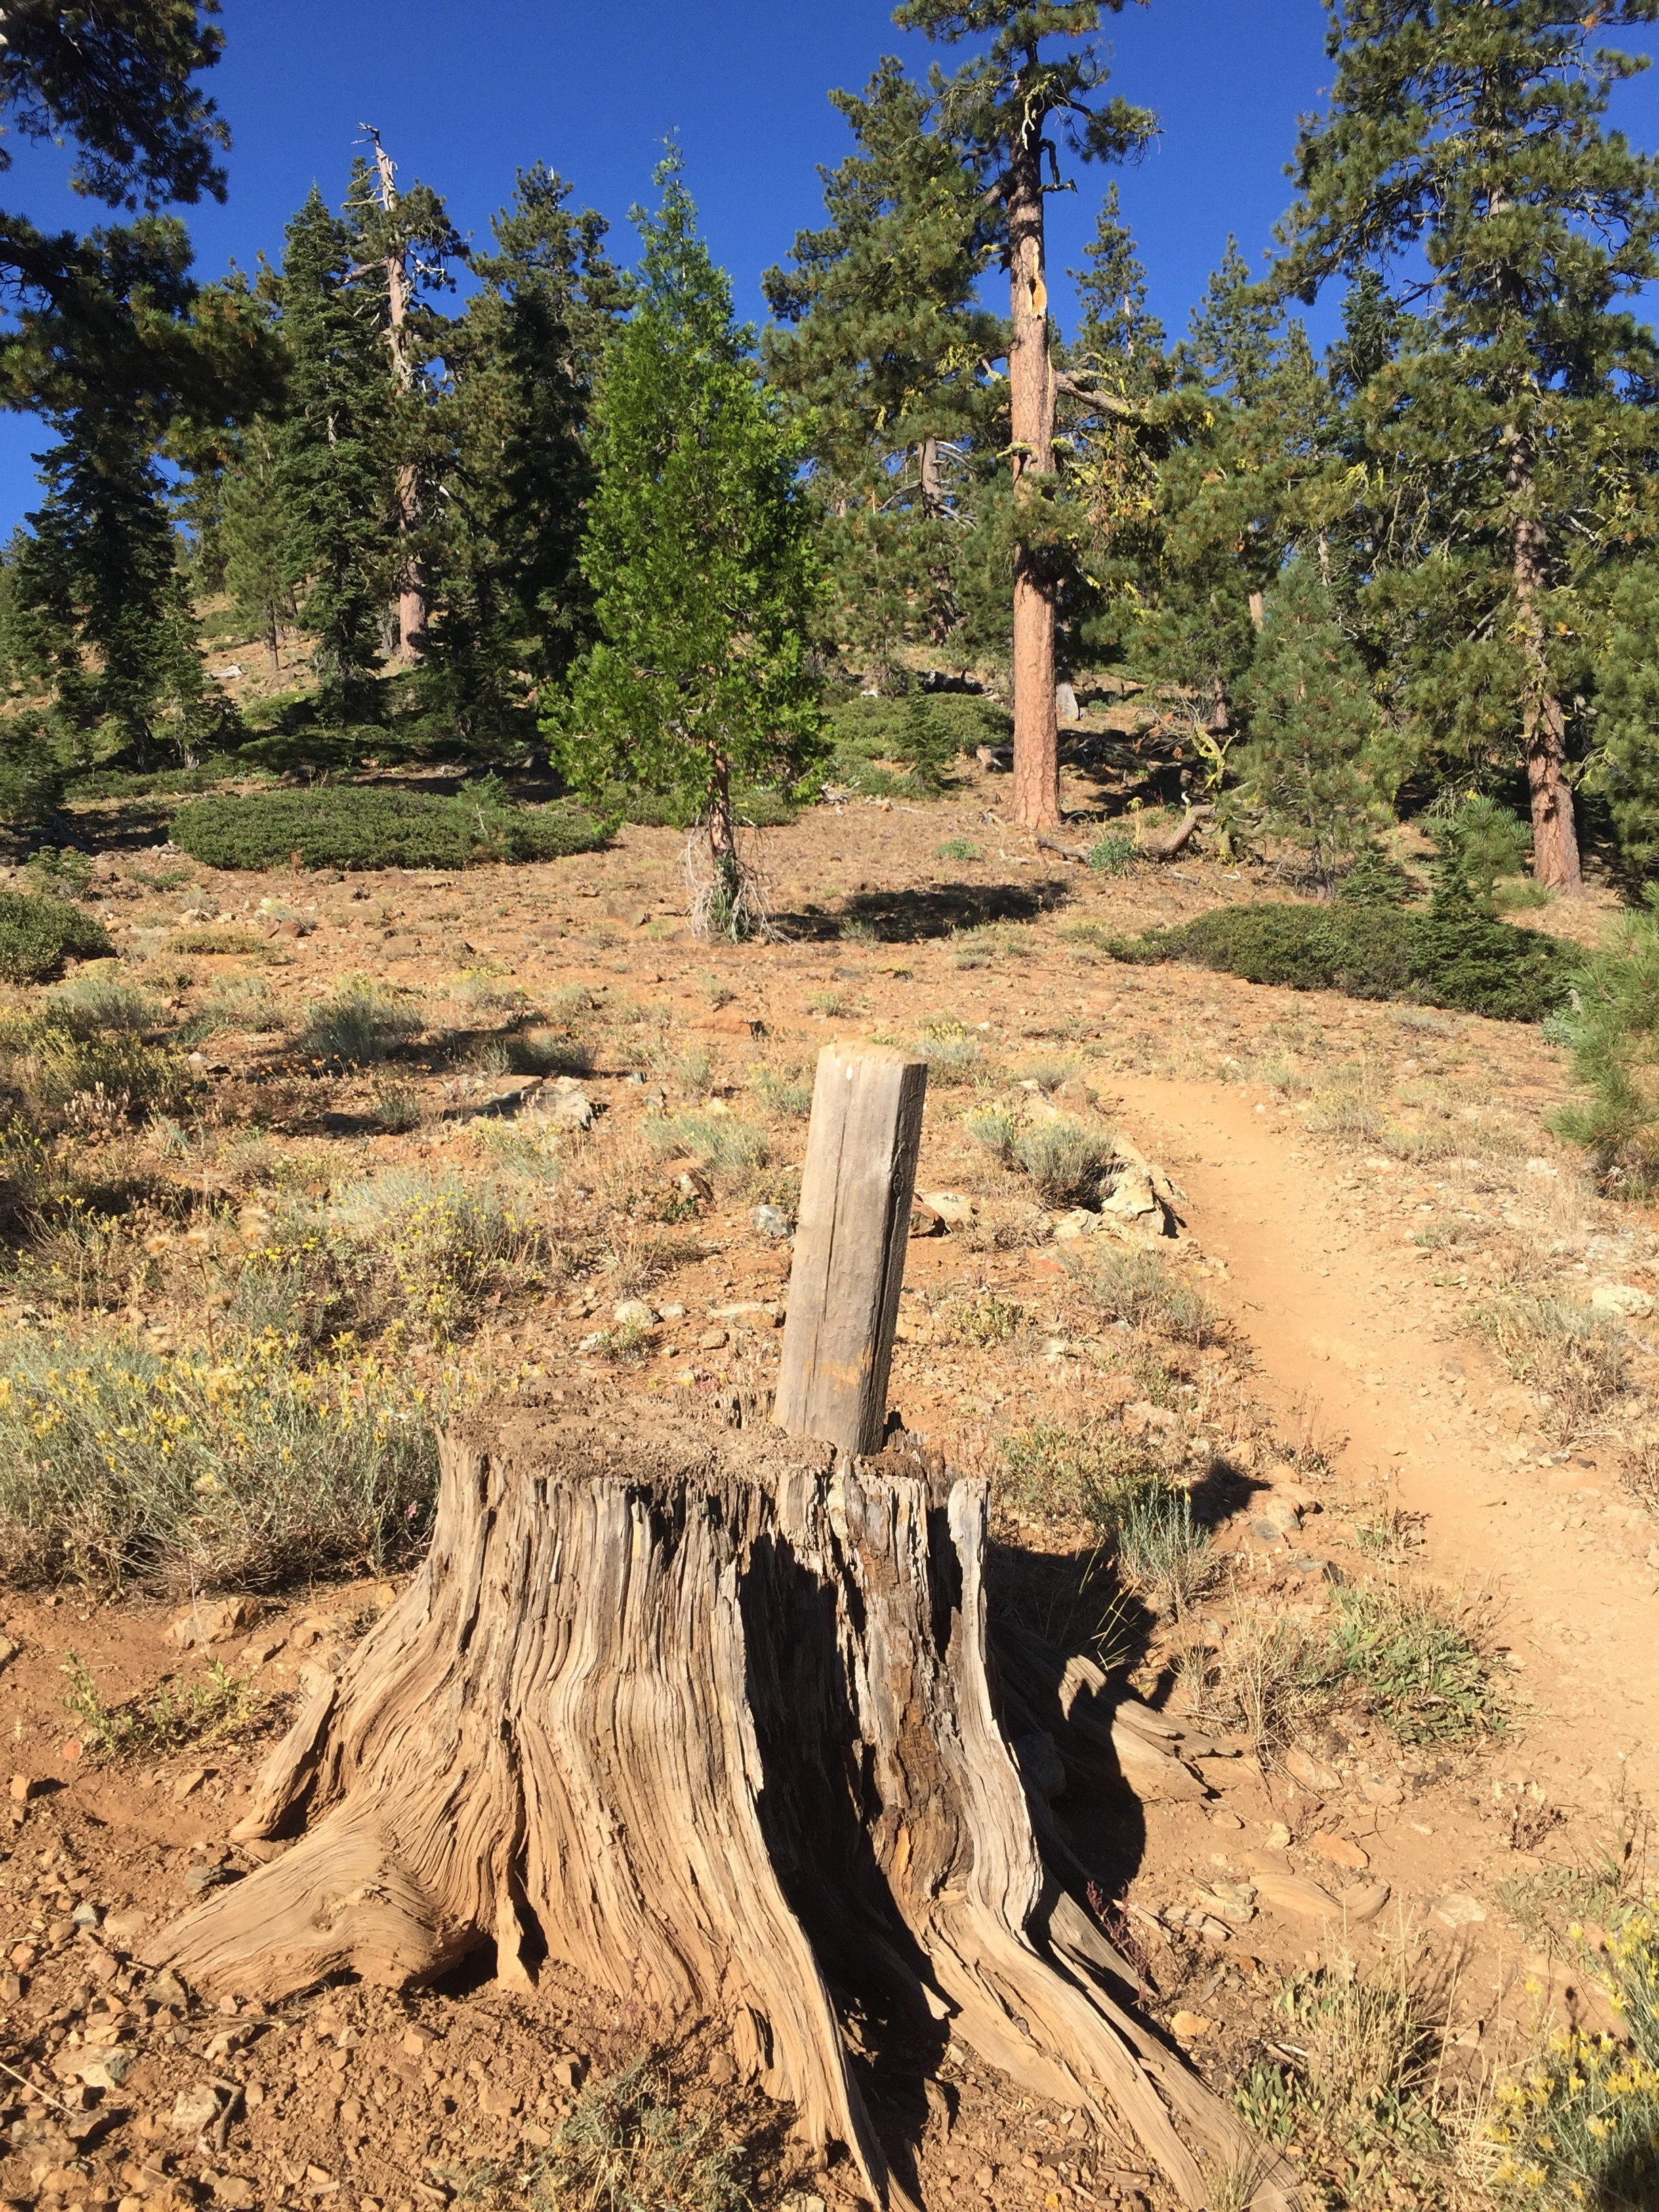 Generally these PCT sign-posts are set into the ground. In this case, the trail builders decided to just wedge it into a stump instead. Maybe the ground was too hard for digging?